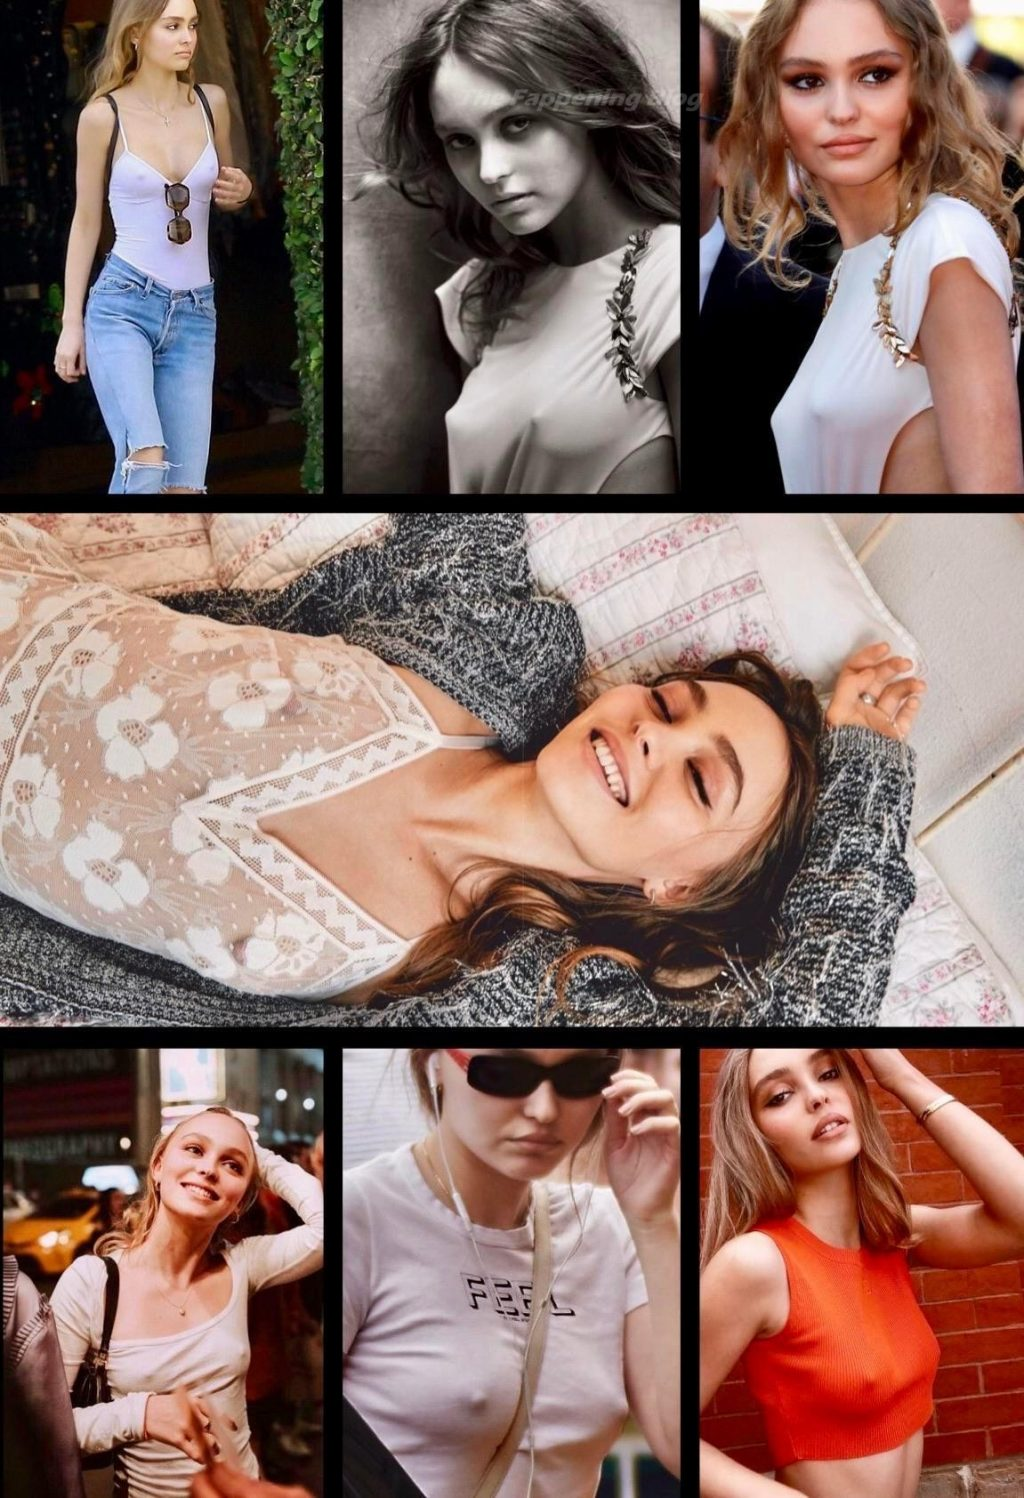 Lily-Rose Depp Hot (1 Collage Photo)